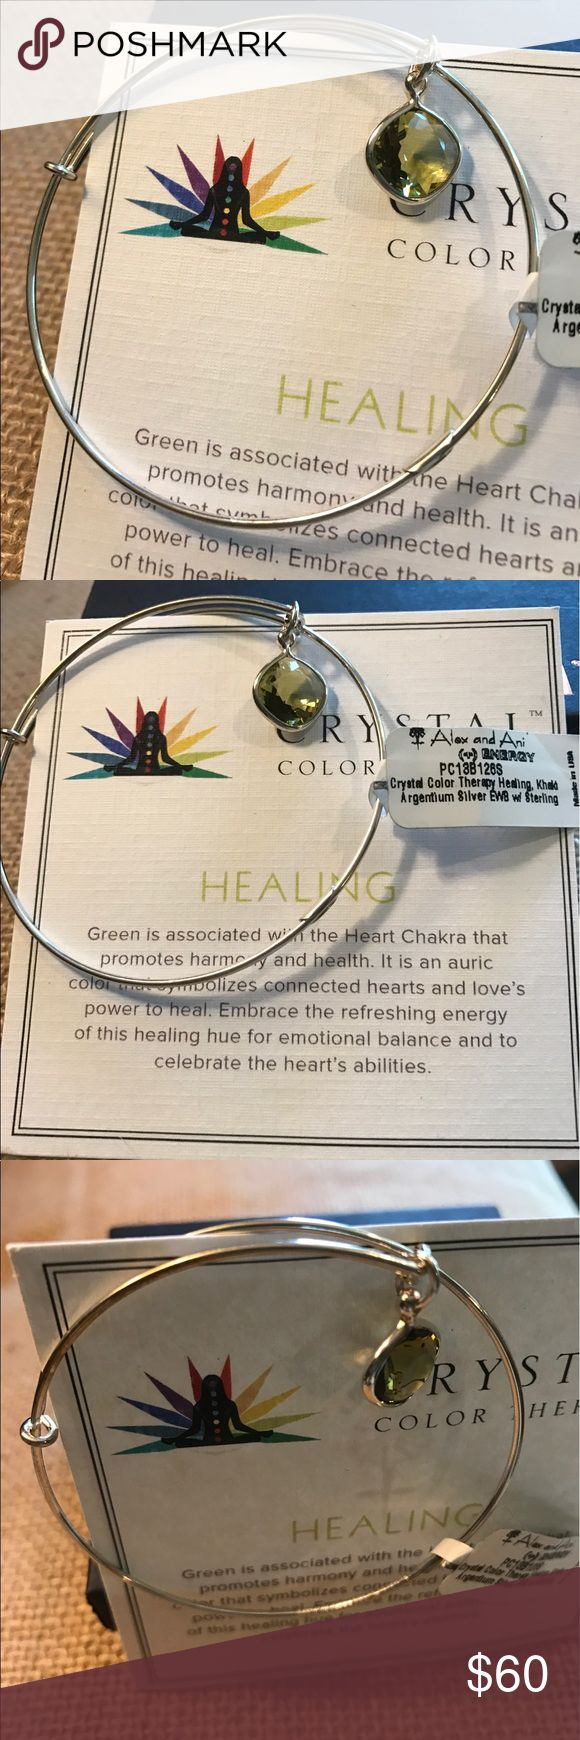 RARE NWT Alex & Ani HEALING Crystal Color Therapy NWT Rare Alex and Ani HEALING Crystal Infusion Color Therapy.  Made of .925 Sterling Silver and Argentium Silver. Original retail $128.  HEALING #Health #Harmony #EmotionalBalance.   Comes with A&A HEALING card and box.  Price Firm for this rare piece. Alex & Ani Jewelry Bracelets